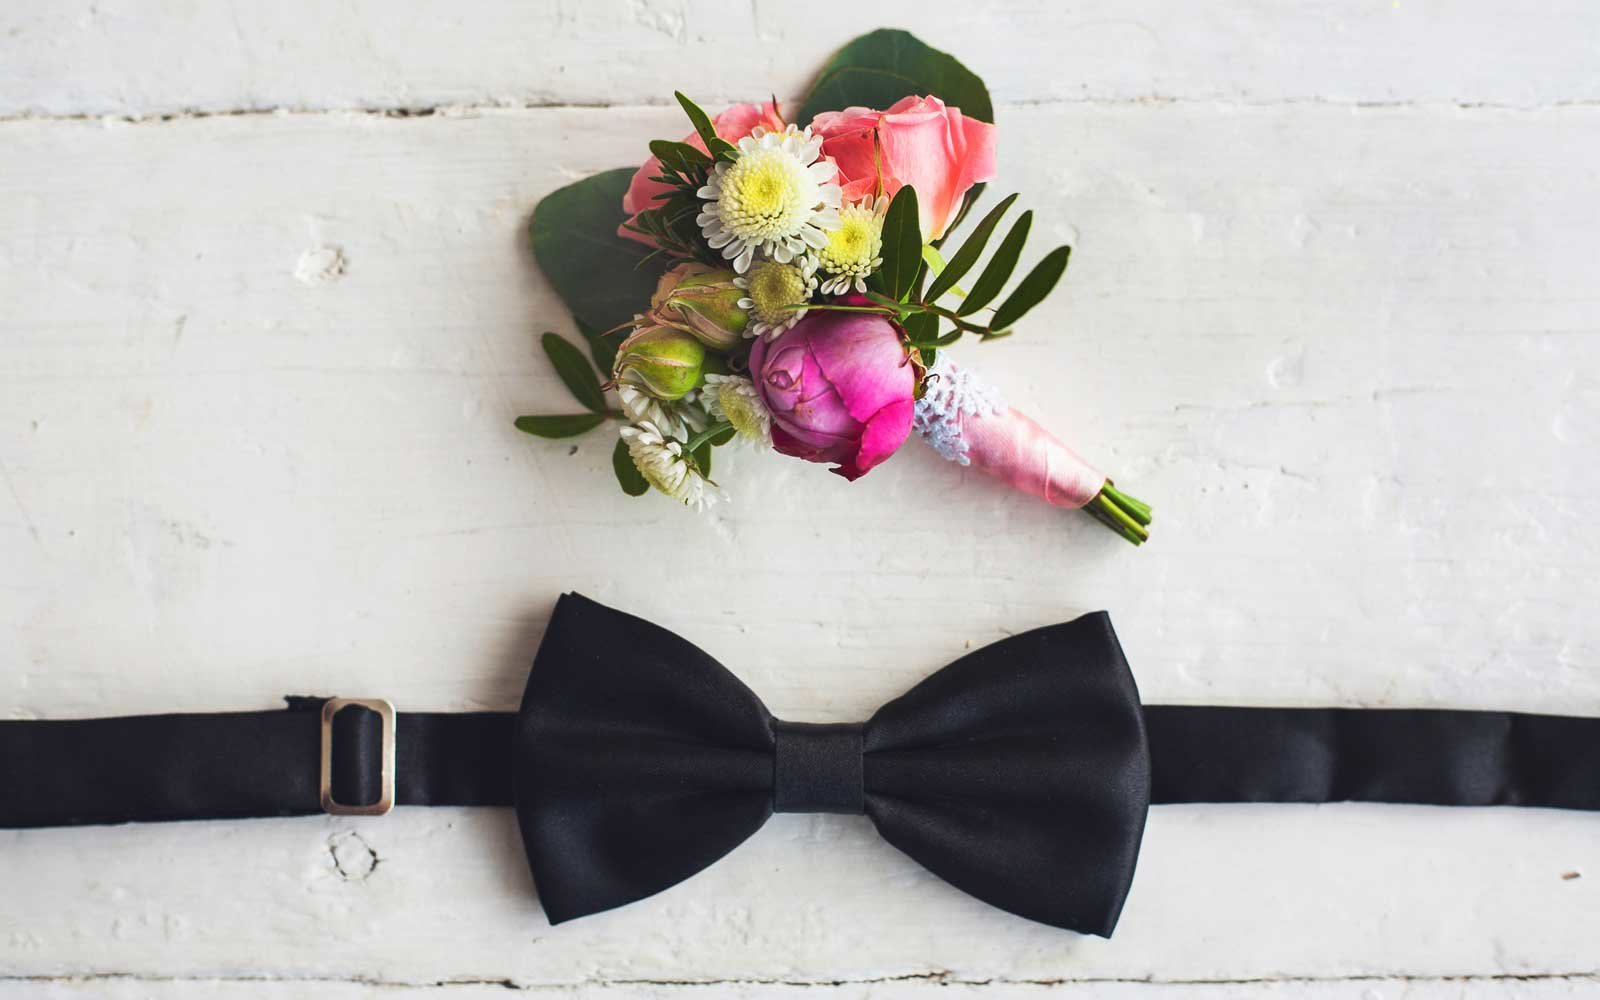 Black bowtie and flower boutonniere